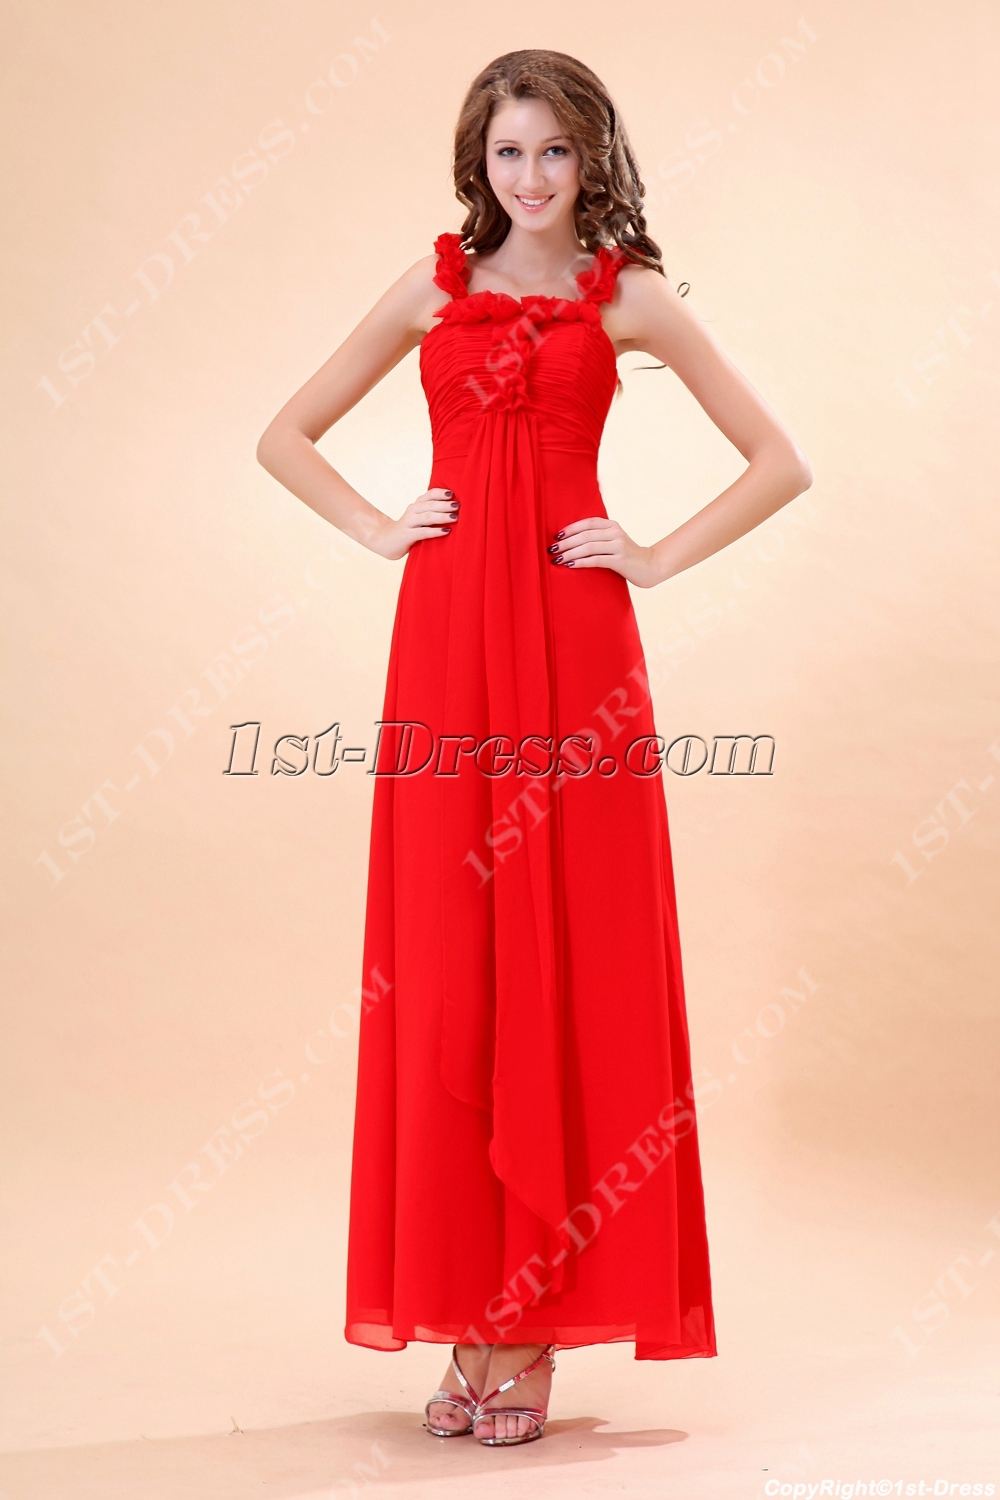 Red ankle length baby doll pregnant bridesmaid dress1st dress red ankle length baby doll pregnant bridesmaid dress loading zoom ombrellifo Gallery